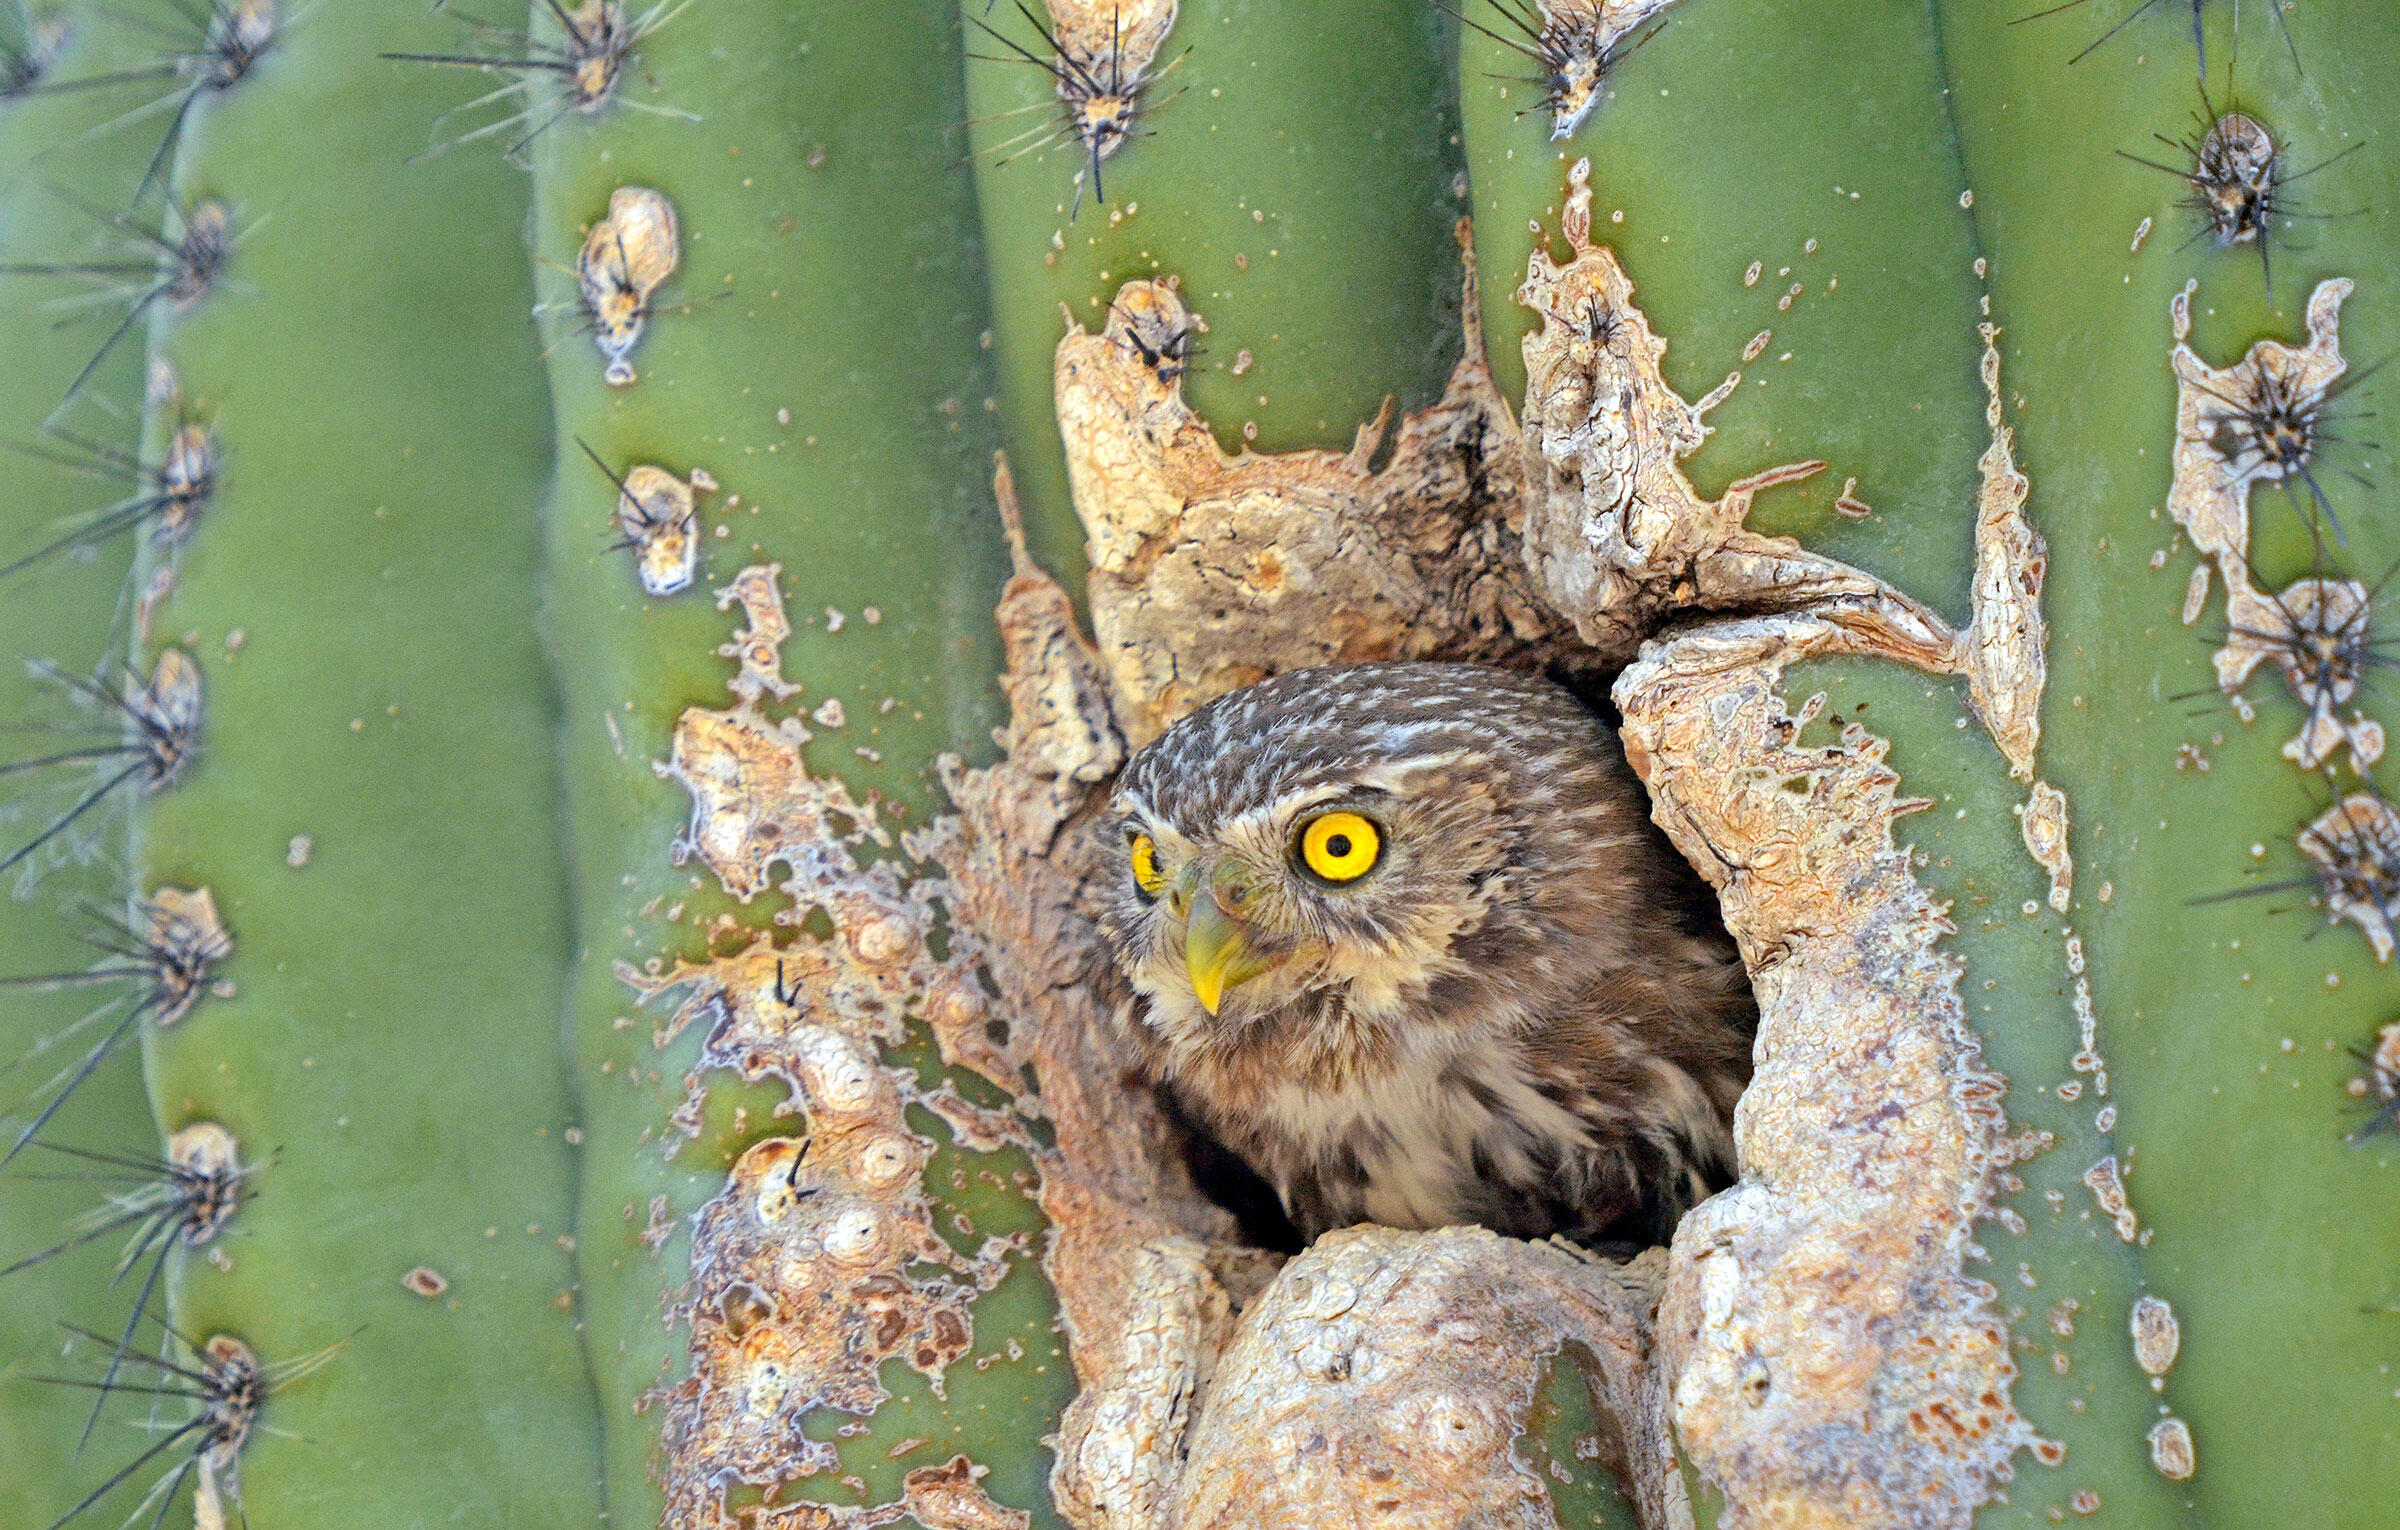 Ferruginous Pygmy-Owls are low-flying birds that will likely be deterred by any tall structure that cross their territory. Aaron Flesch